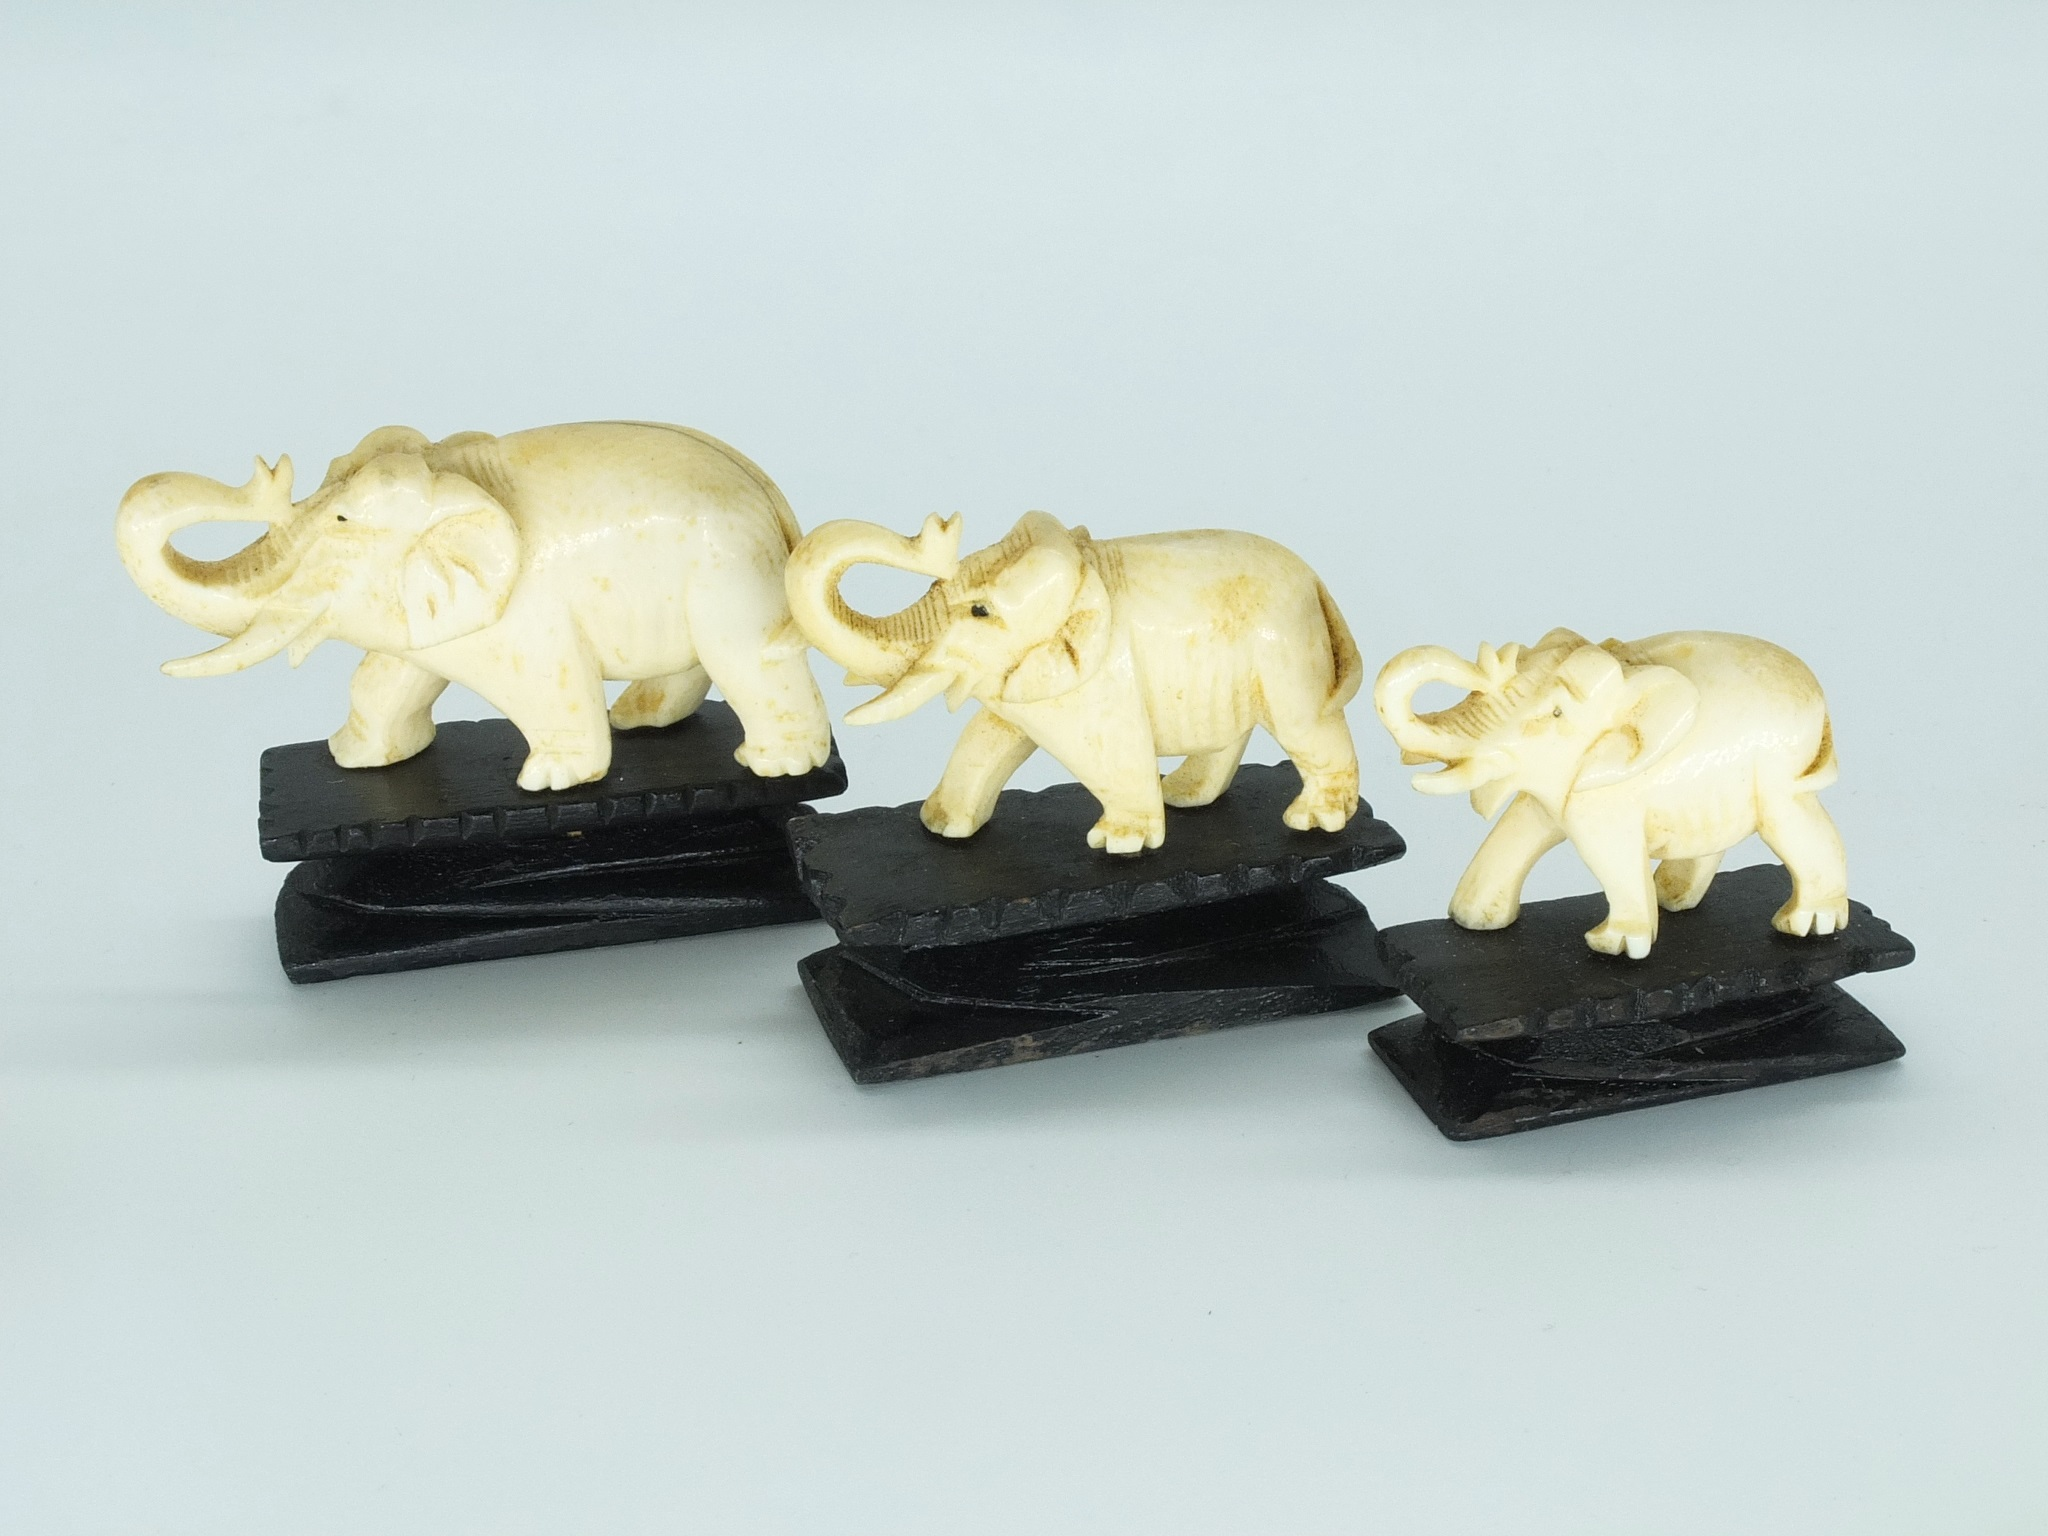 'Graduated Set of Three Carved Elephant Ivory Elephants Early to Mid 20th Century'